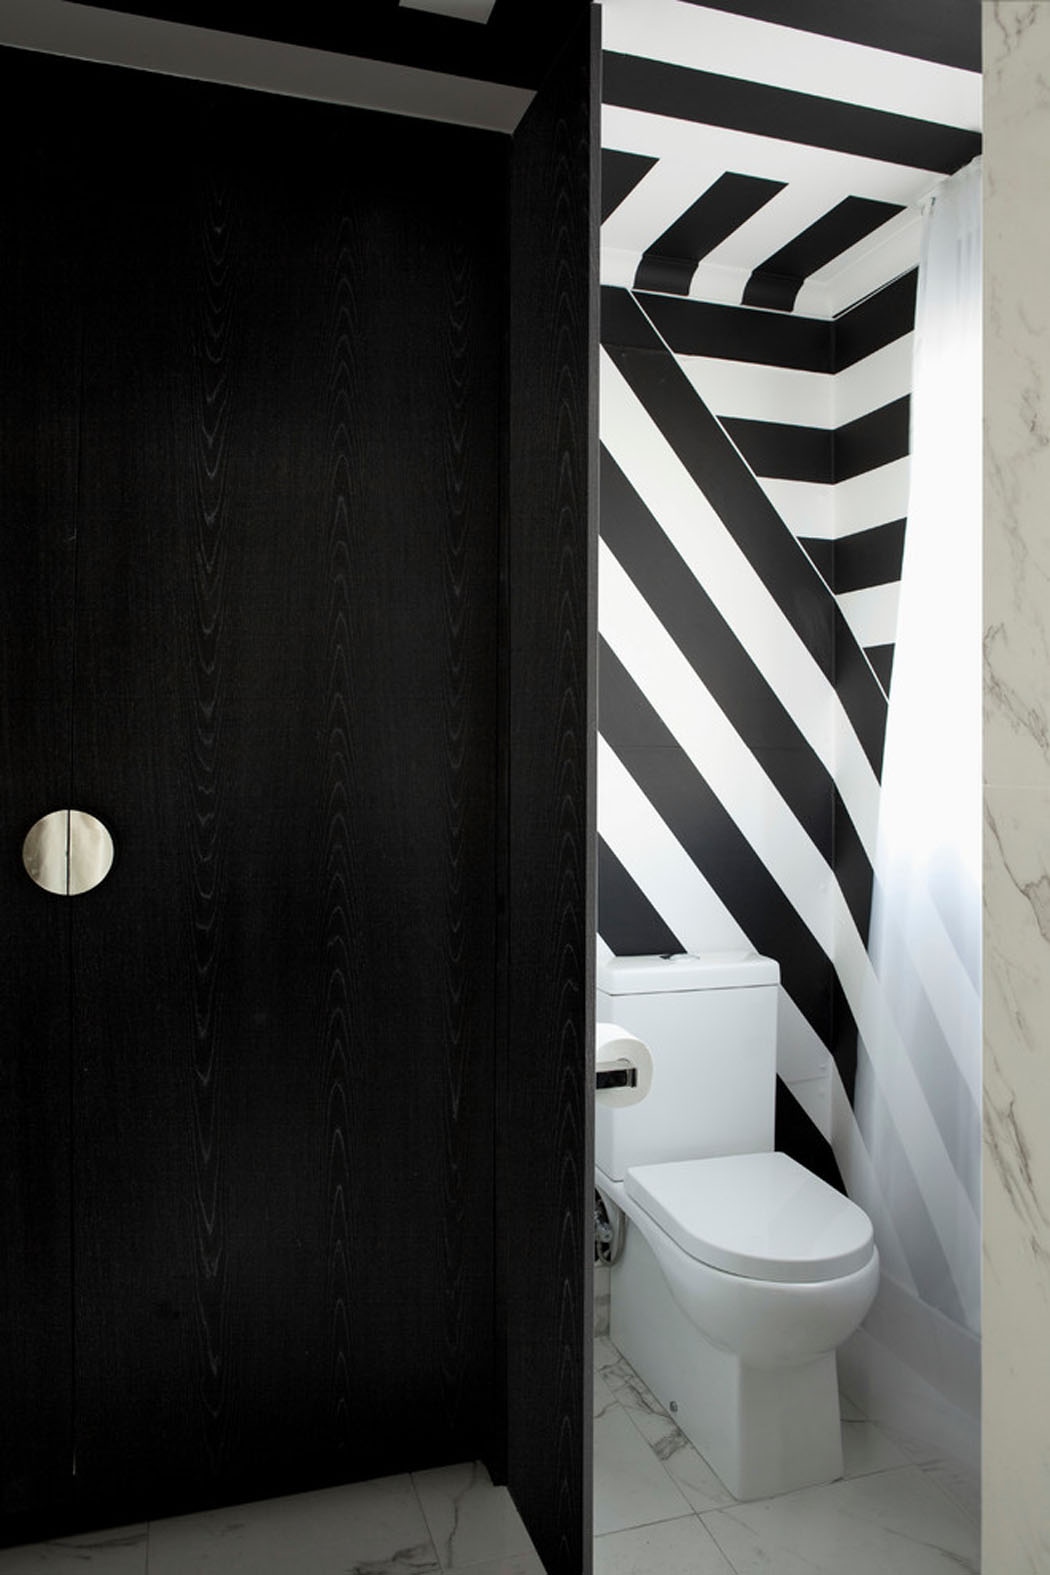 Bel appartement design brisbane la d co l gante en noir blanc vivons maison for Decoration toilettes design